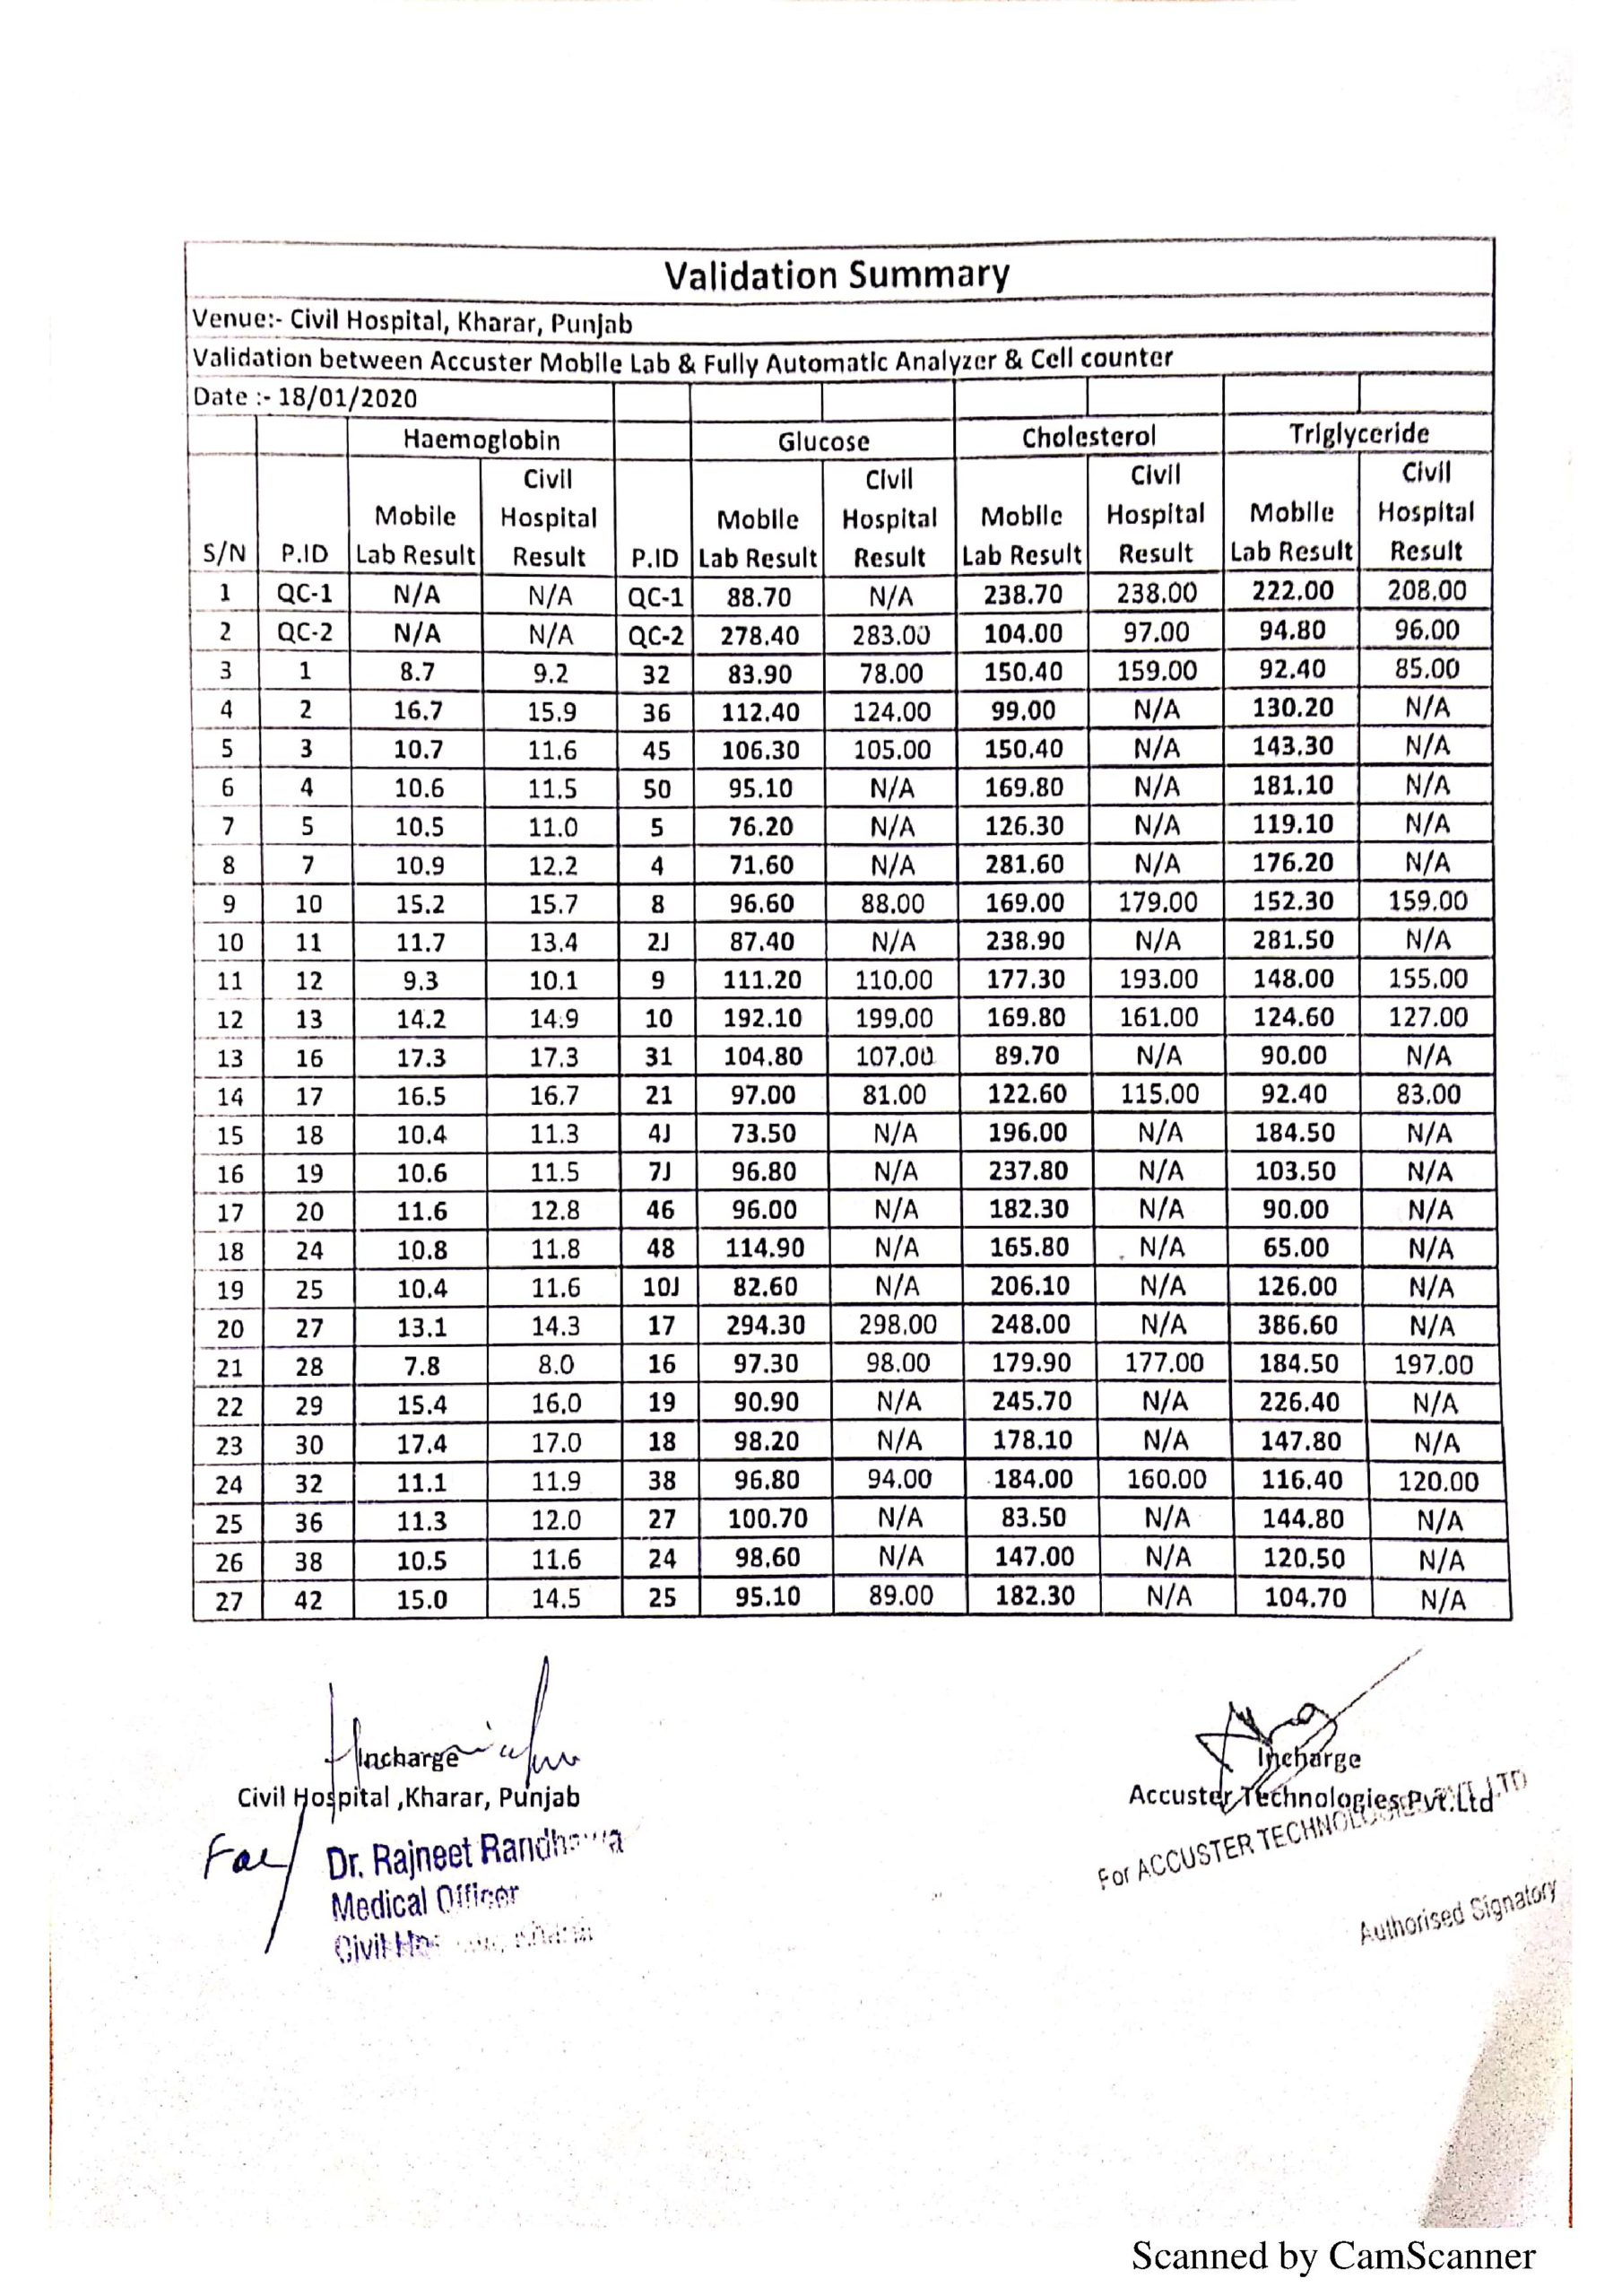 Validation Summary_Kharar_Punjab